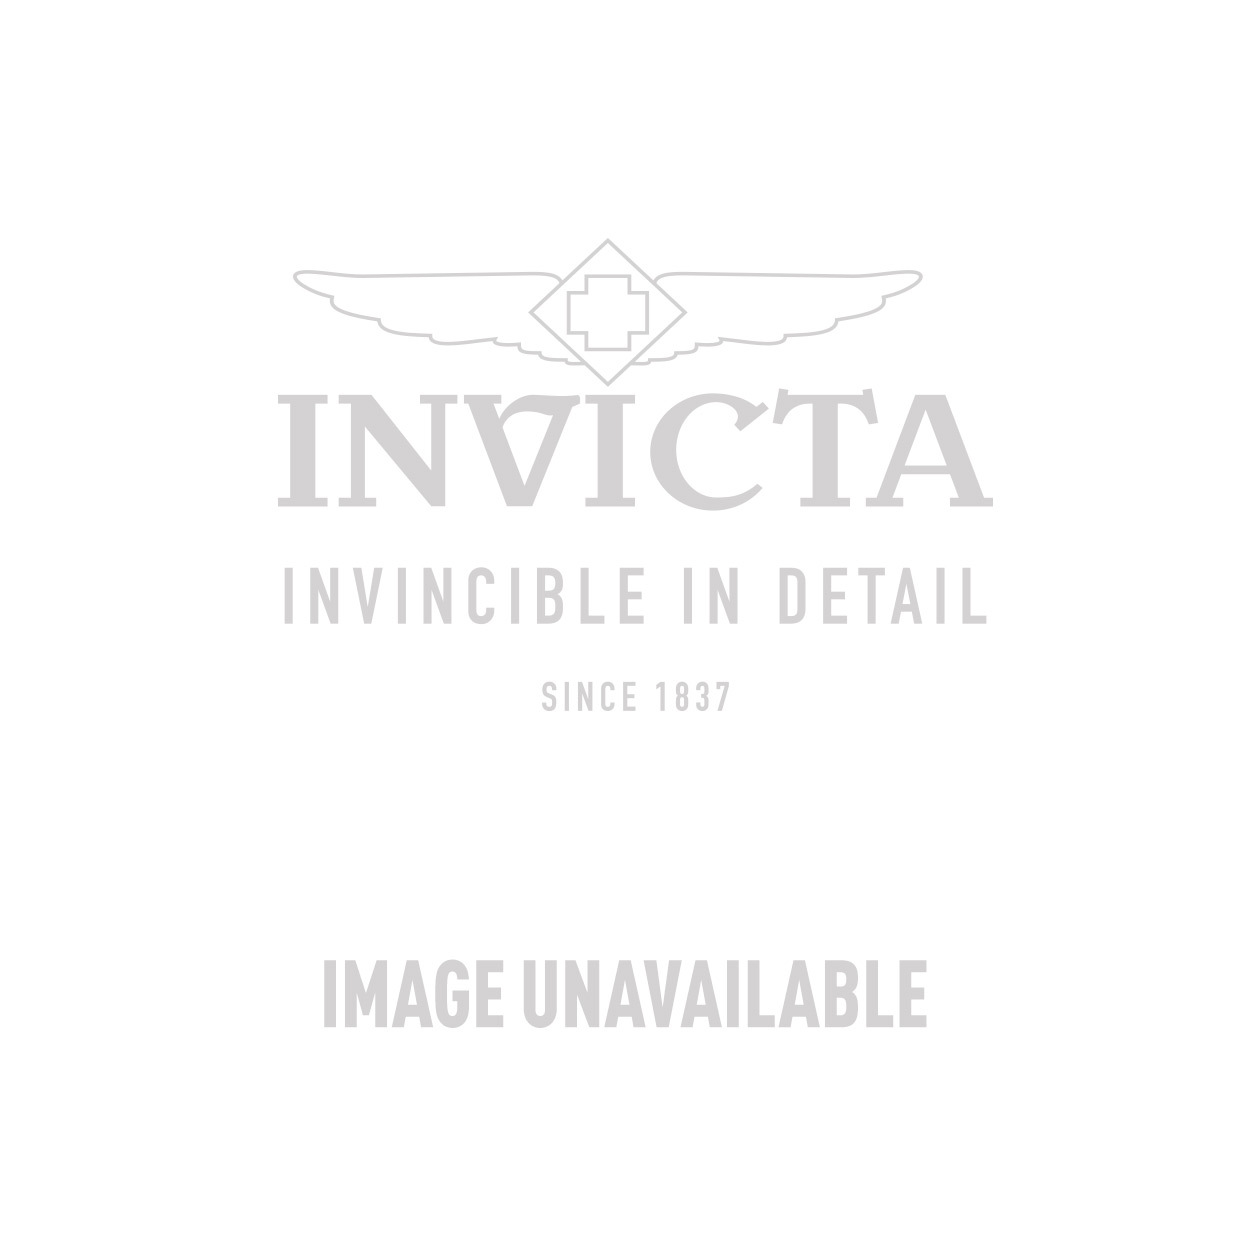 Invicta Pro Diver Swiss Movement Quartz Watch - Black case with Black tone Stainless Steel band - Model 0076